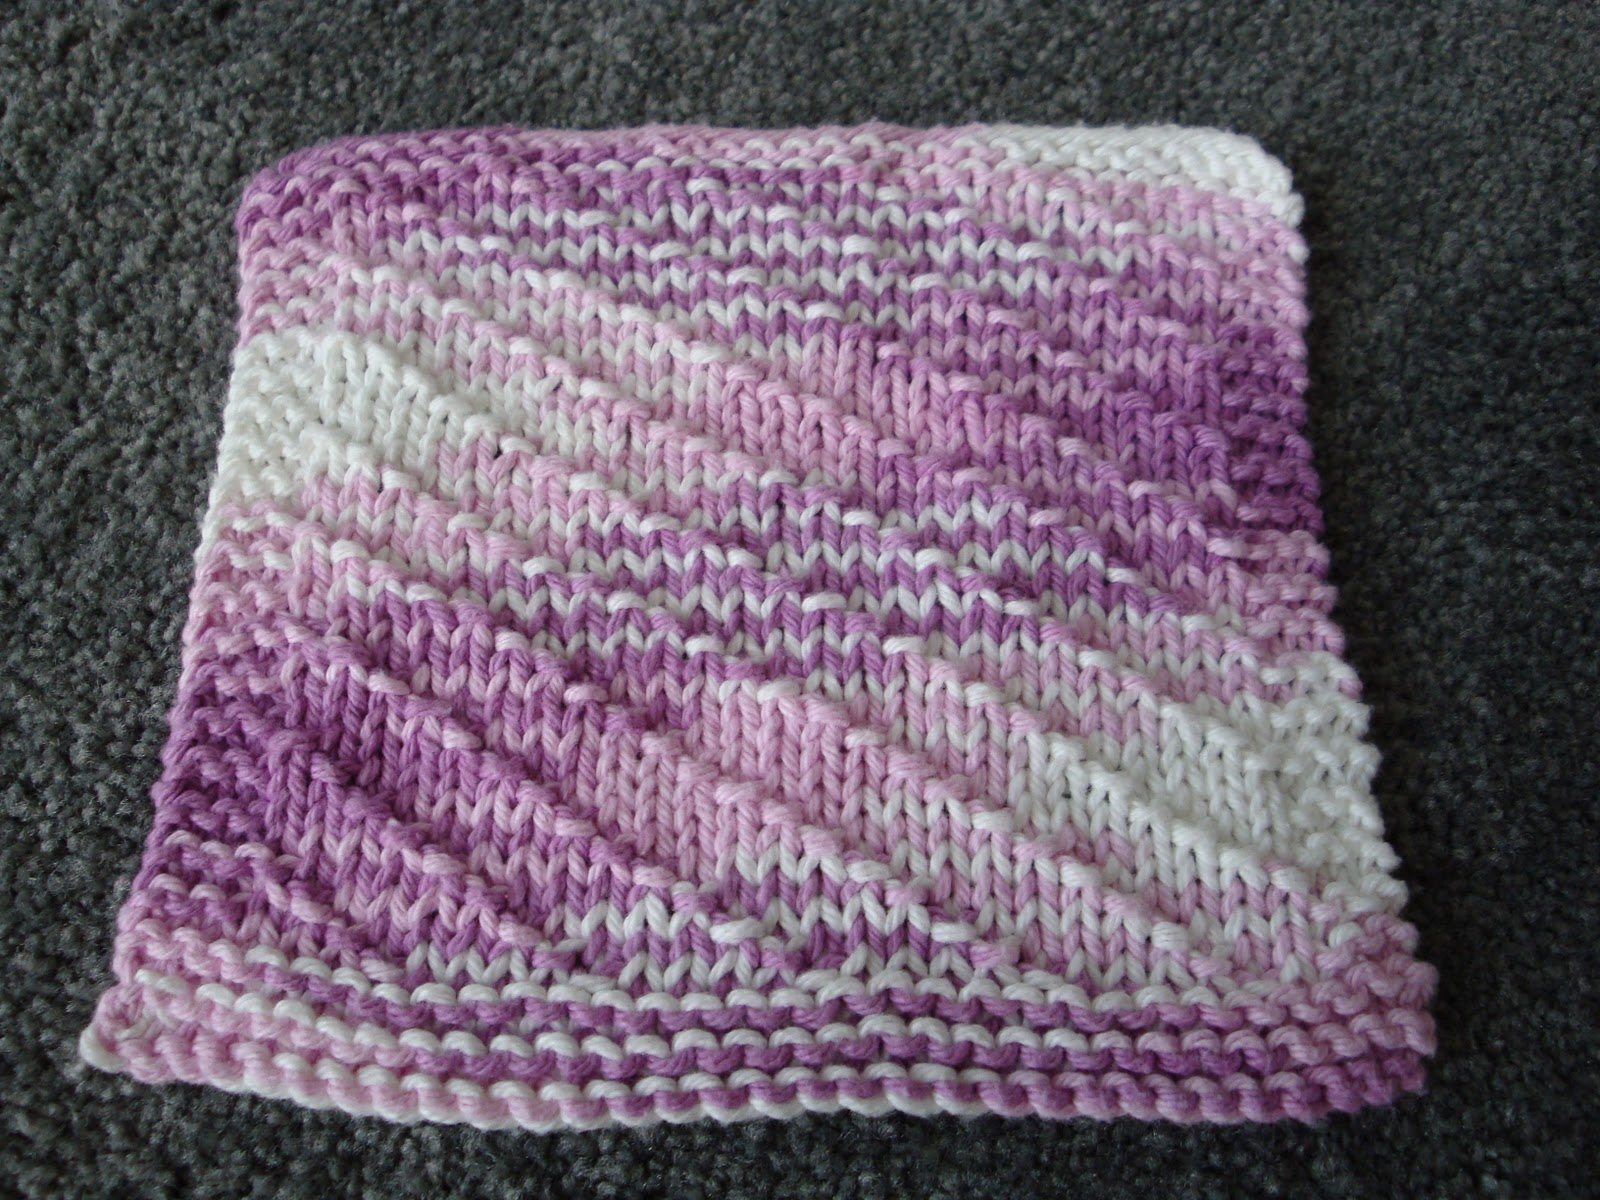 Kim's Knitting Korner: Vacation Knitting... dishcloths.